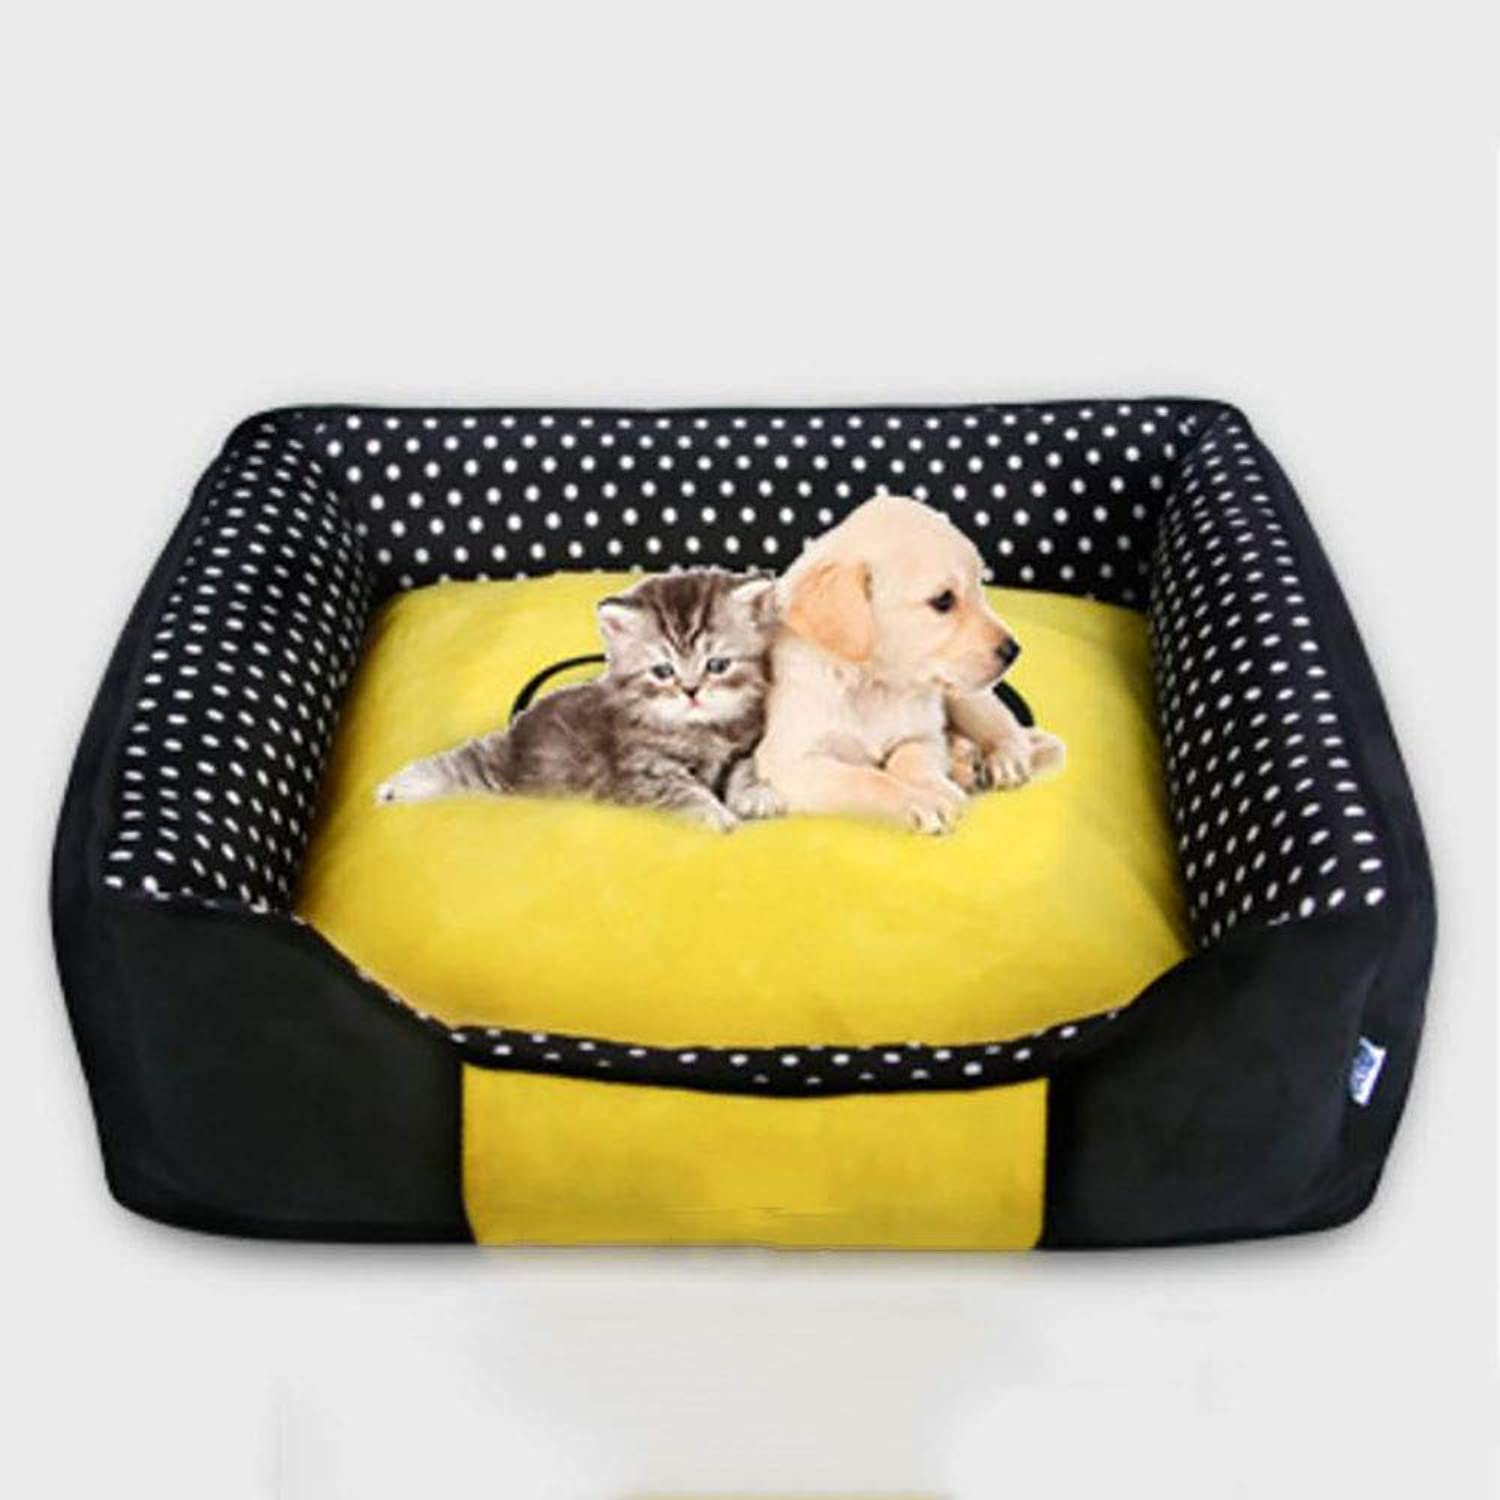 MiaoMiao Pet Dog Cat House Bed Autumn And Winter Dot Square Removable And Washable Warm Cat Litter Four Seasons Available Pet Nest,Blackm